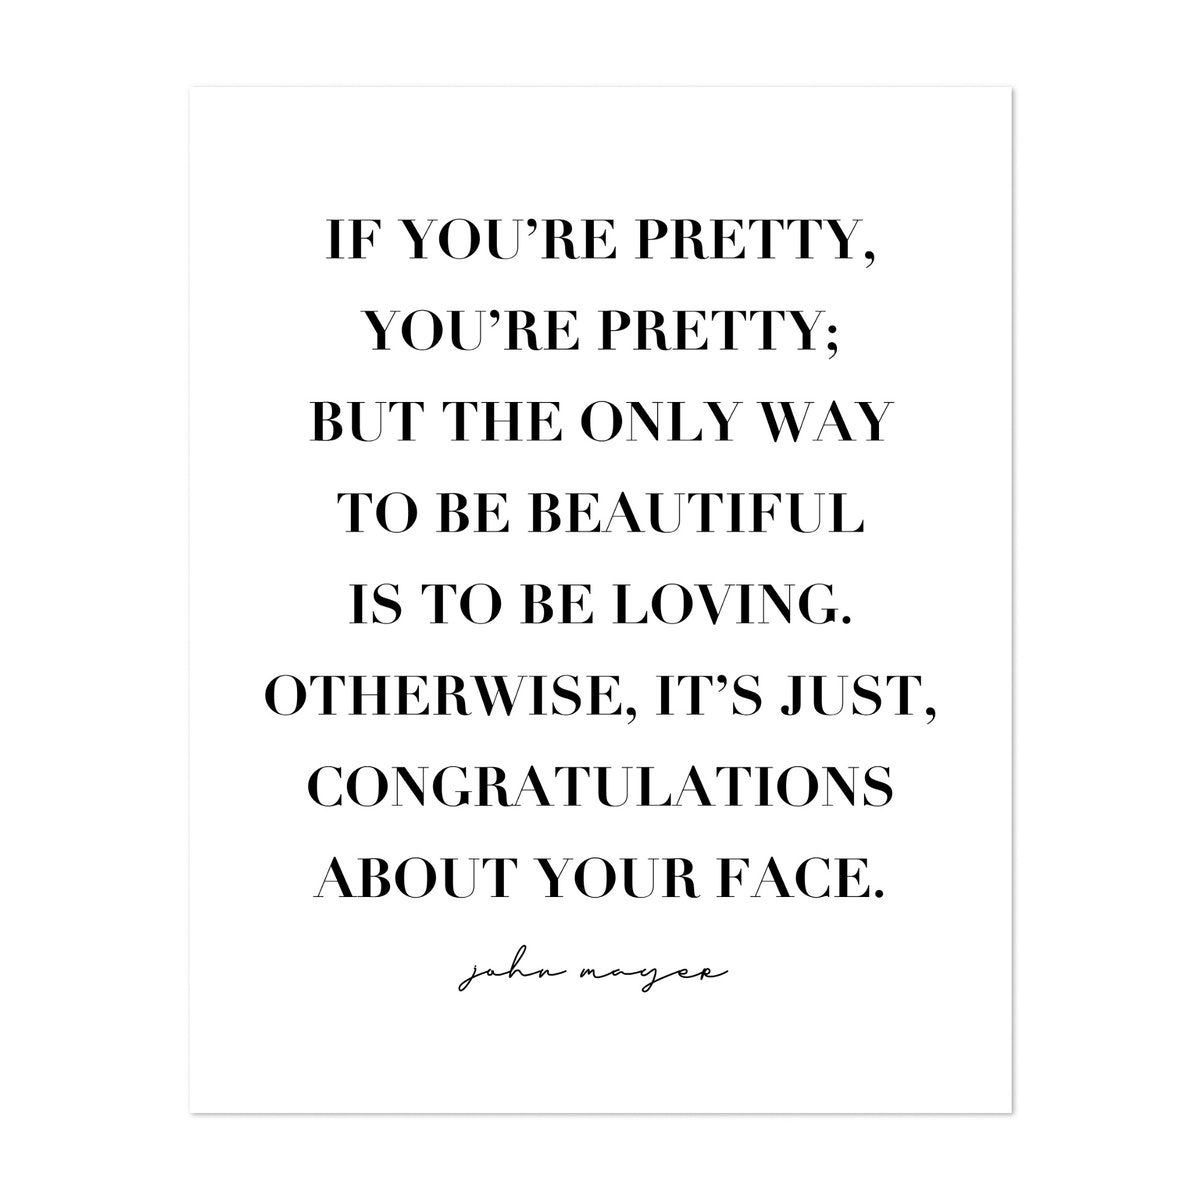 If You're Pretty, You're Pretty; but the Only Way to be Beautiful Is to be Loving. Otherwise, It's Just Congratulations about Your Face. -John Mayer Quote